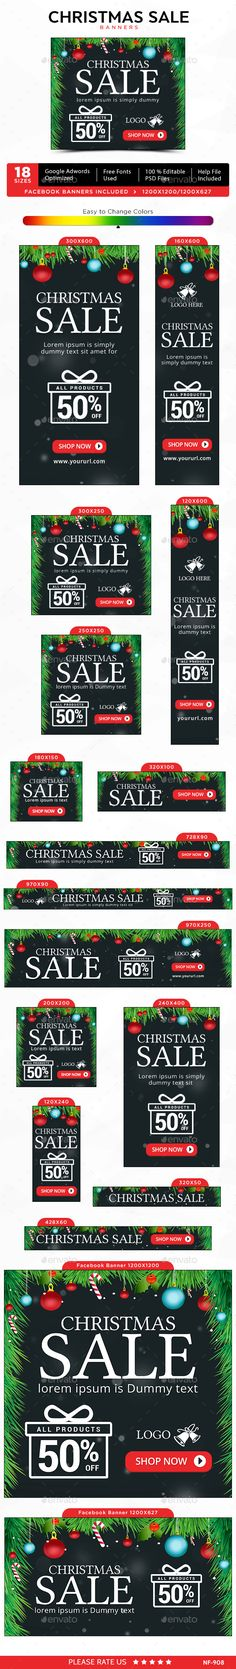 Car Web Banner Ad Template PSD Buy and Download